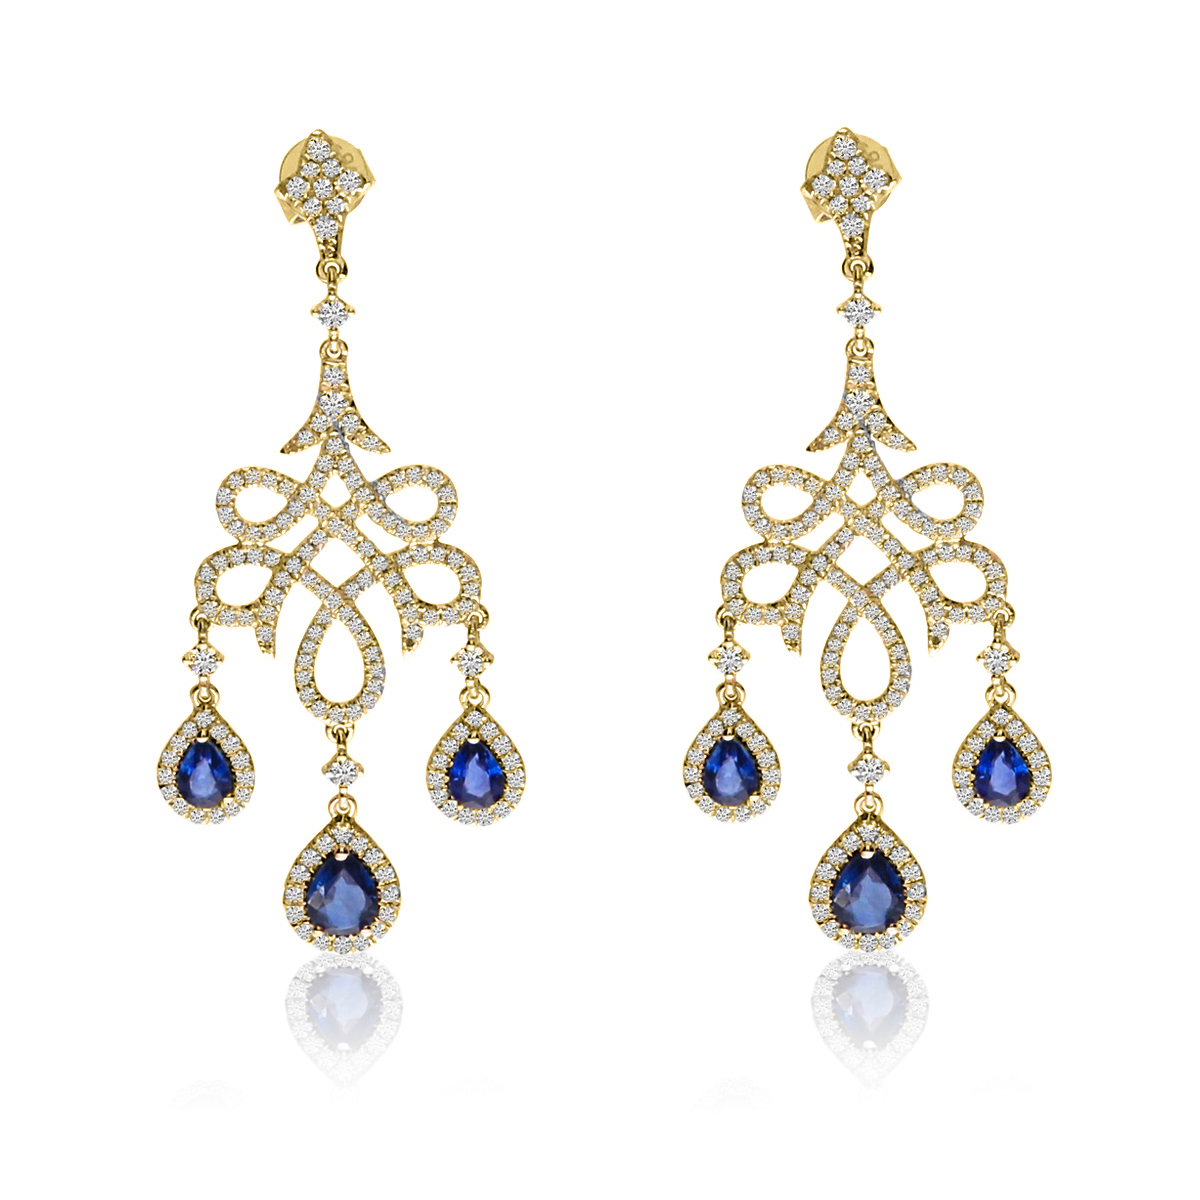 Blue Sapphire & Diamond Chandelier Earrings 14k Yellow Gold (2.66ct)